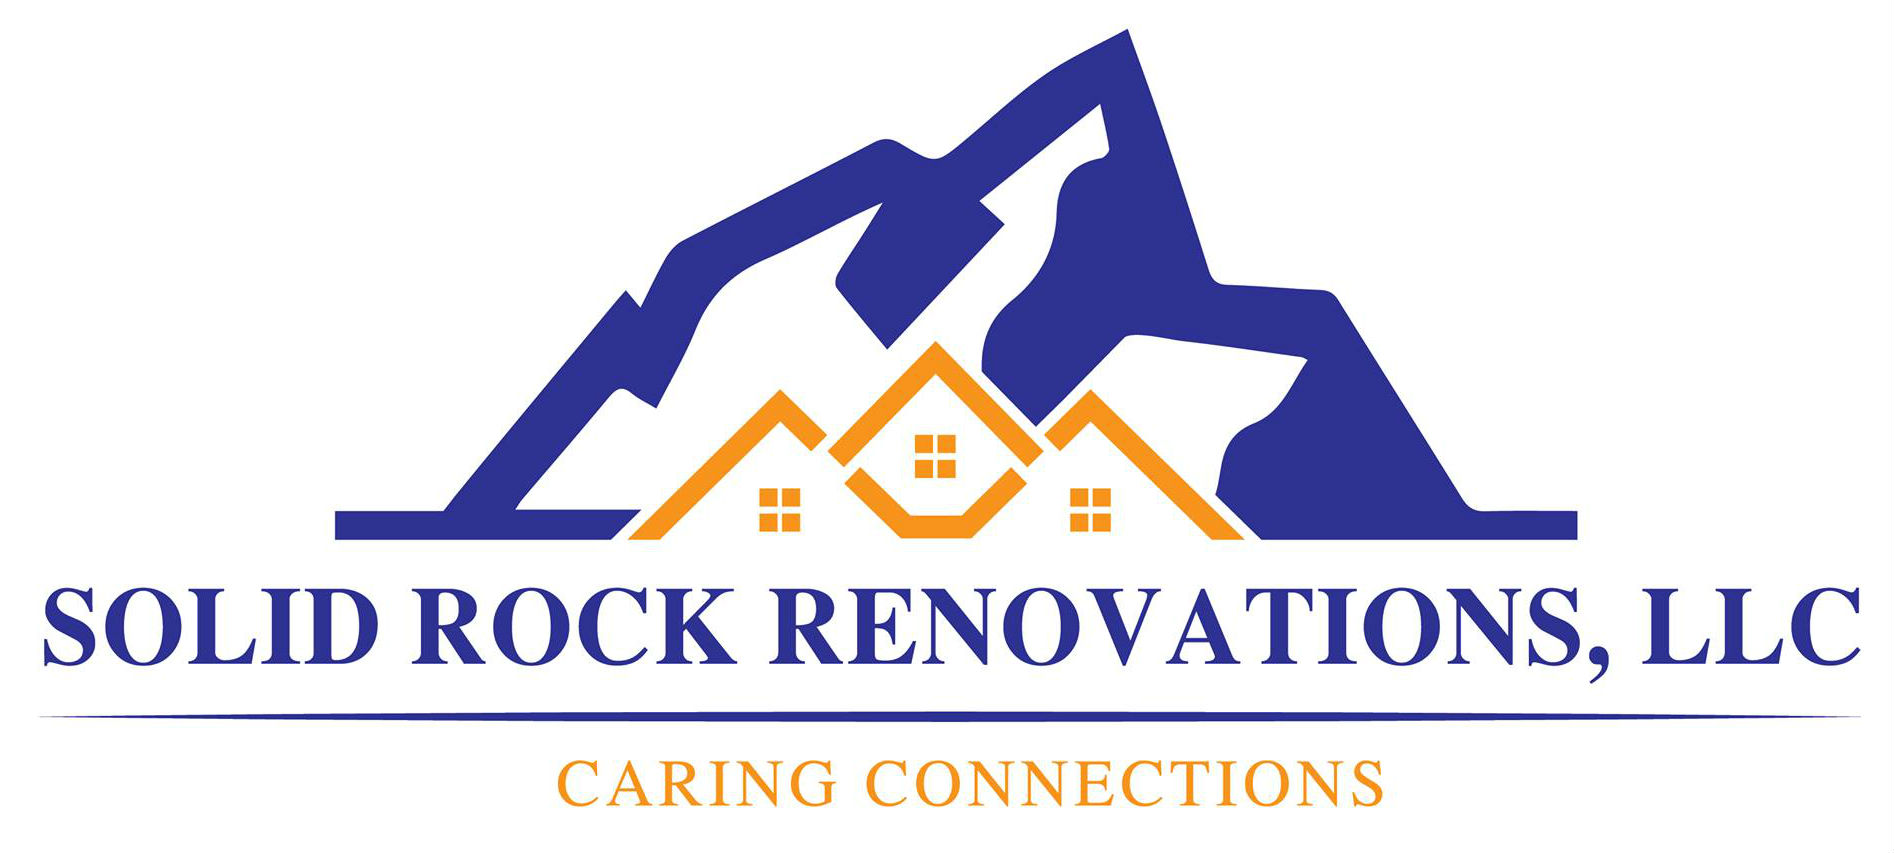 Solid Rock Renovations